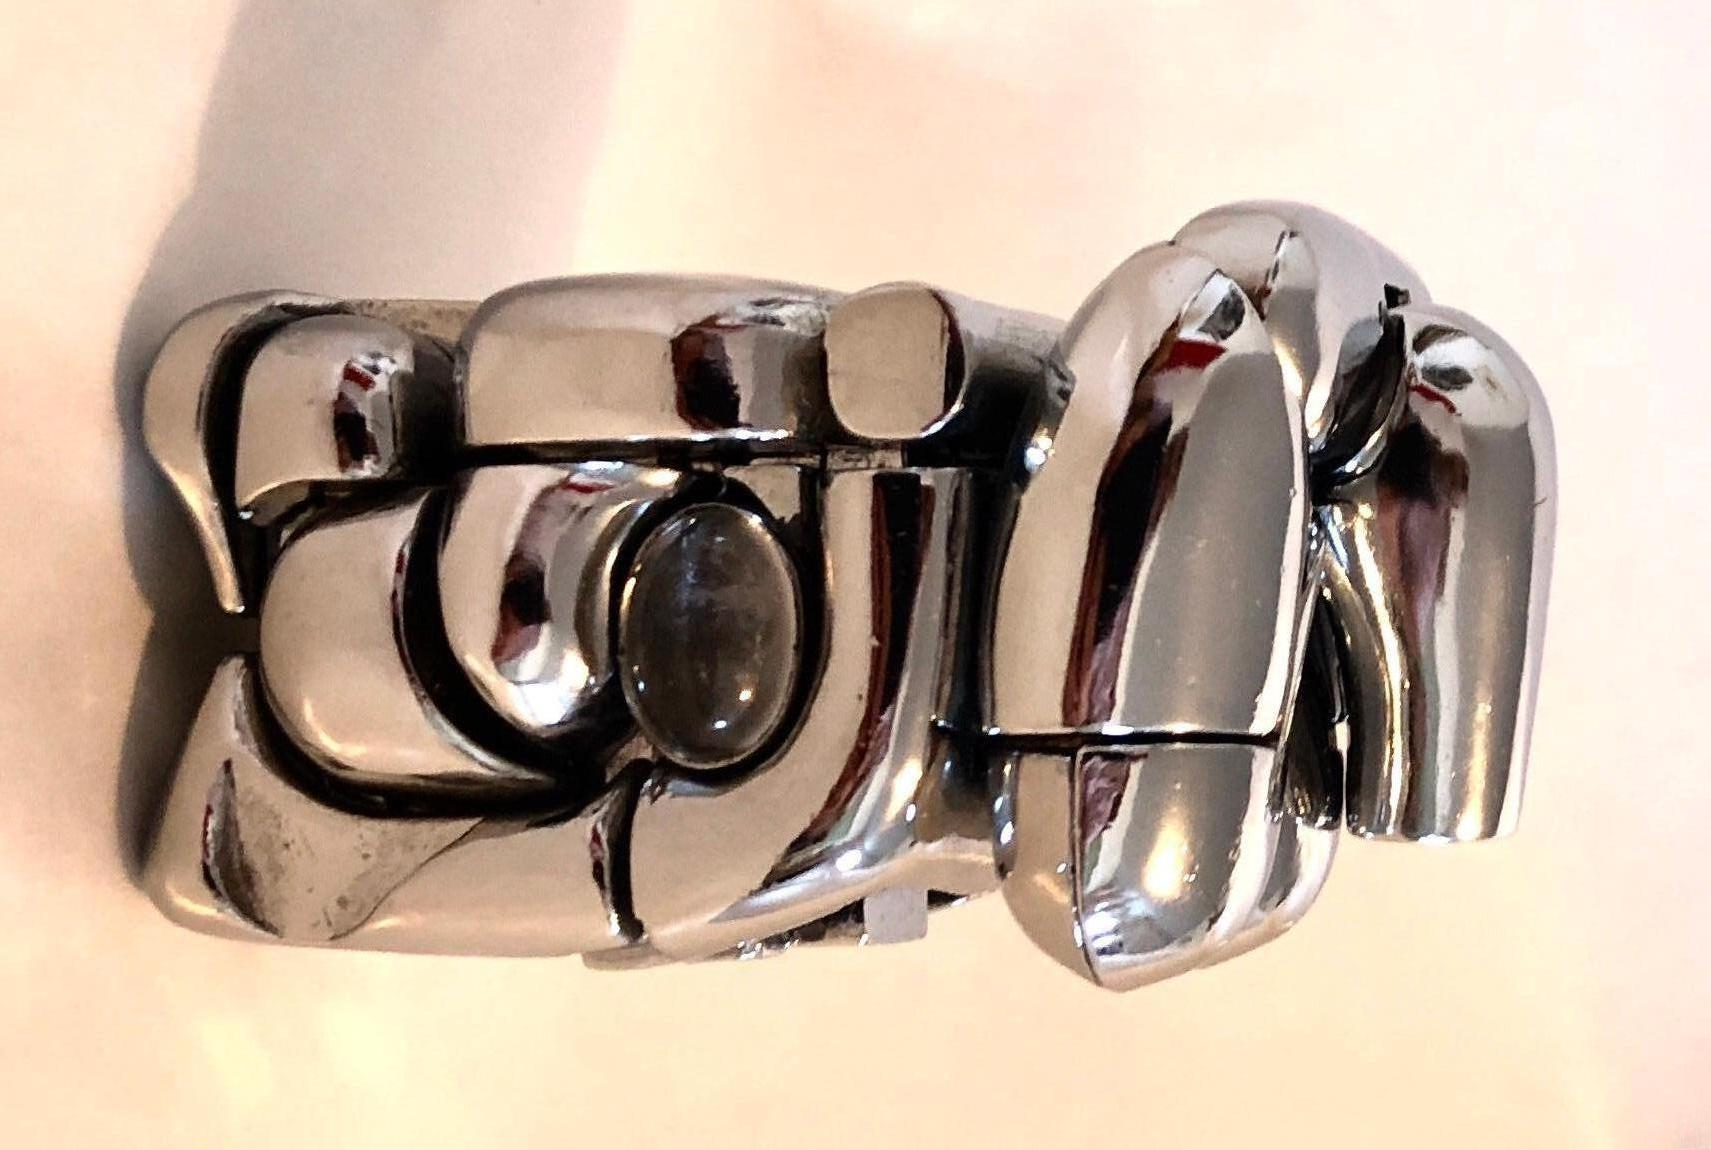 1960s Wearable Ring Pop Art Puzzle Kinetic Sculpture Mini Maria Miguel Berrocal